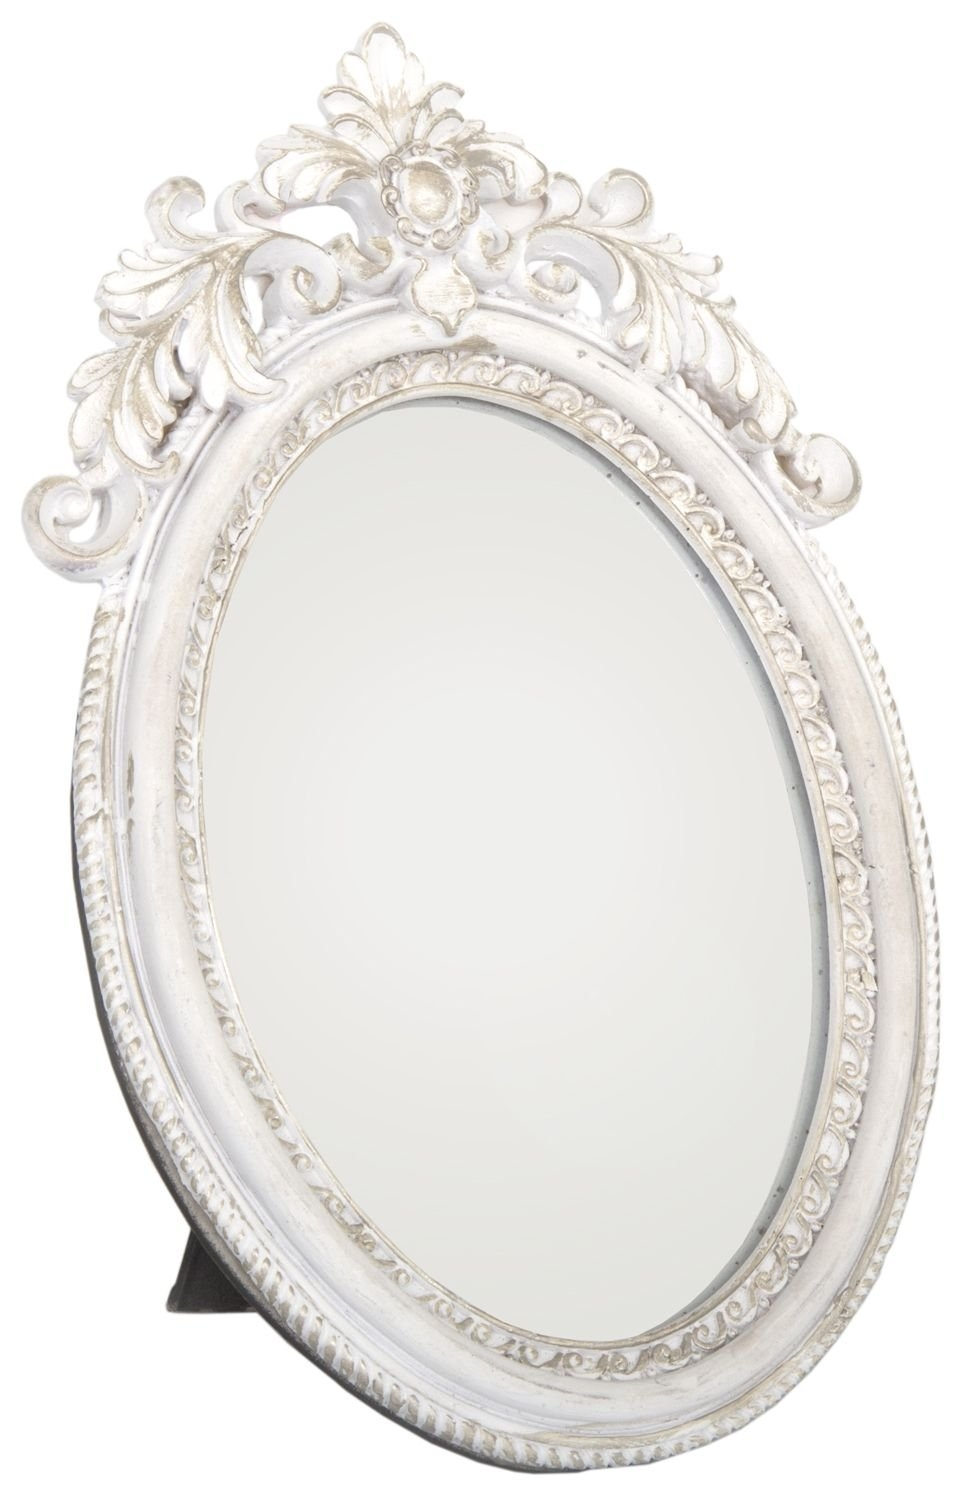 Stunning Shab Chic Cream And Gold Painted Mirror Ideal For Inside Oval Shabby Chic Mirror (Image 14 of 15)